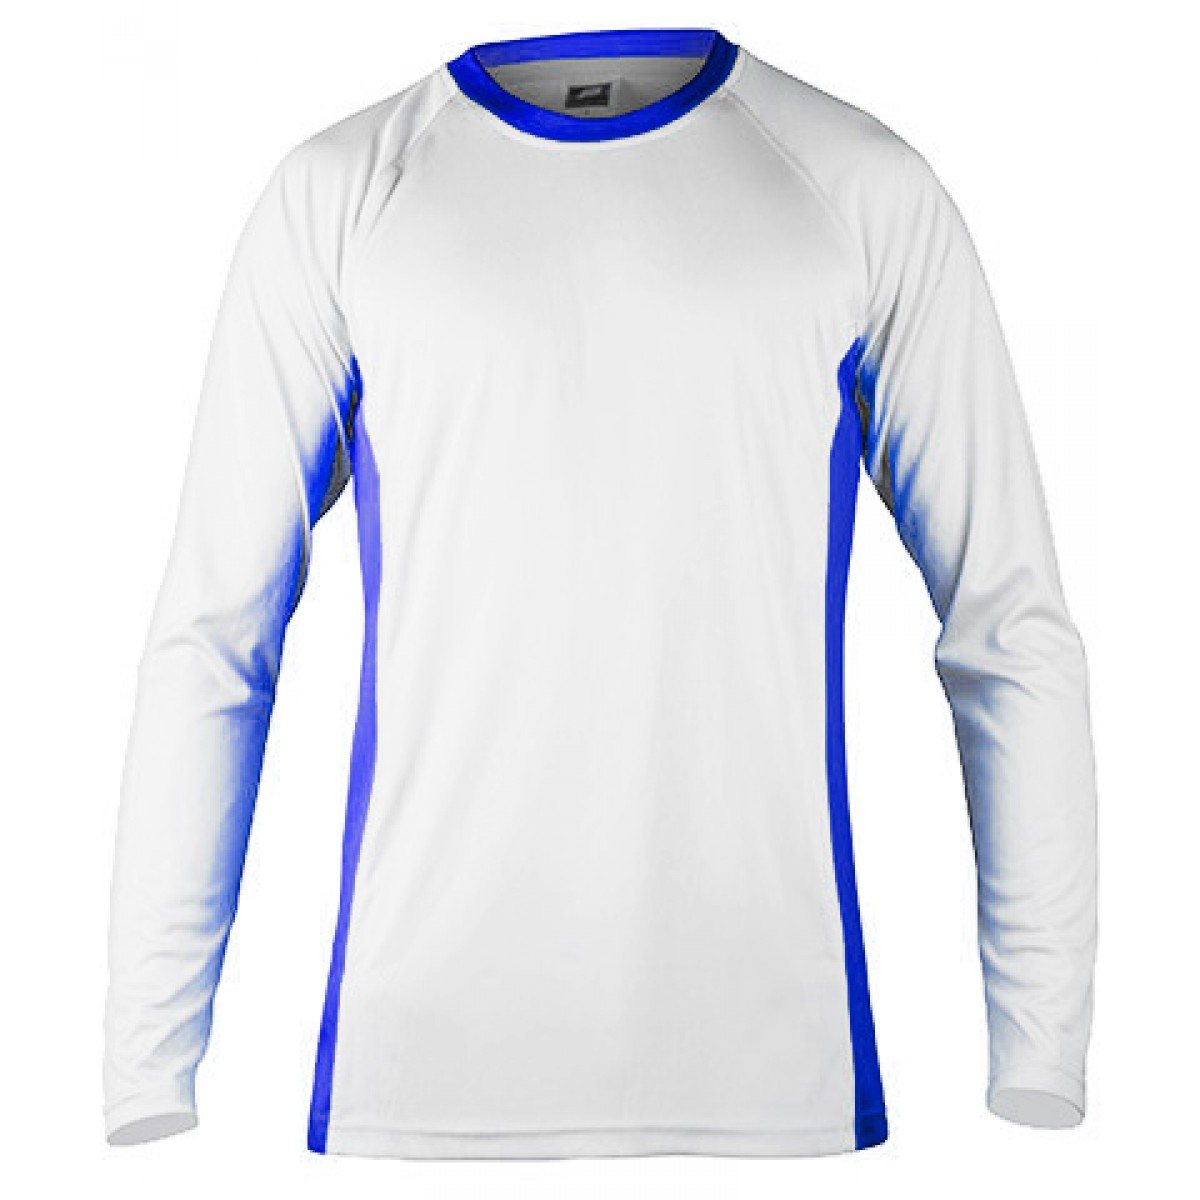 Long Sleeves Performance With Side Insert-White/Blue-XL